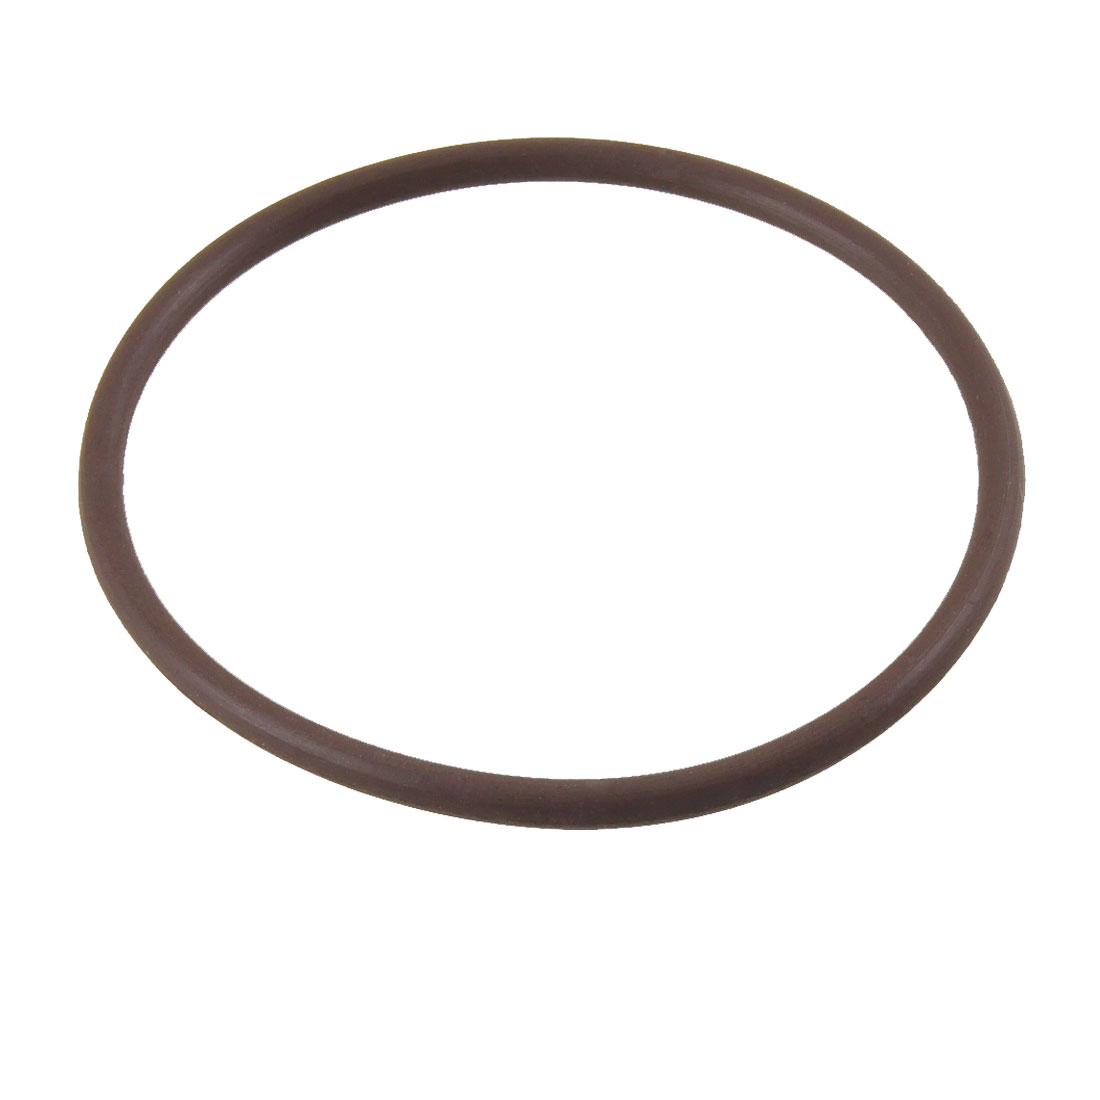 Fluorine Rubber O Ring Oil Sealing Gaskets 55mm x 49mm x 3mm